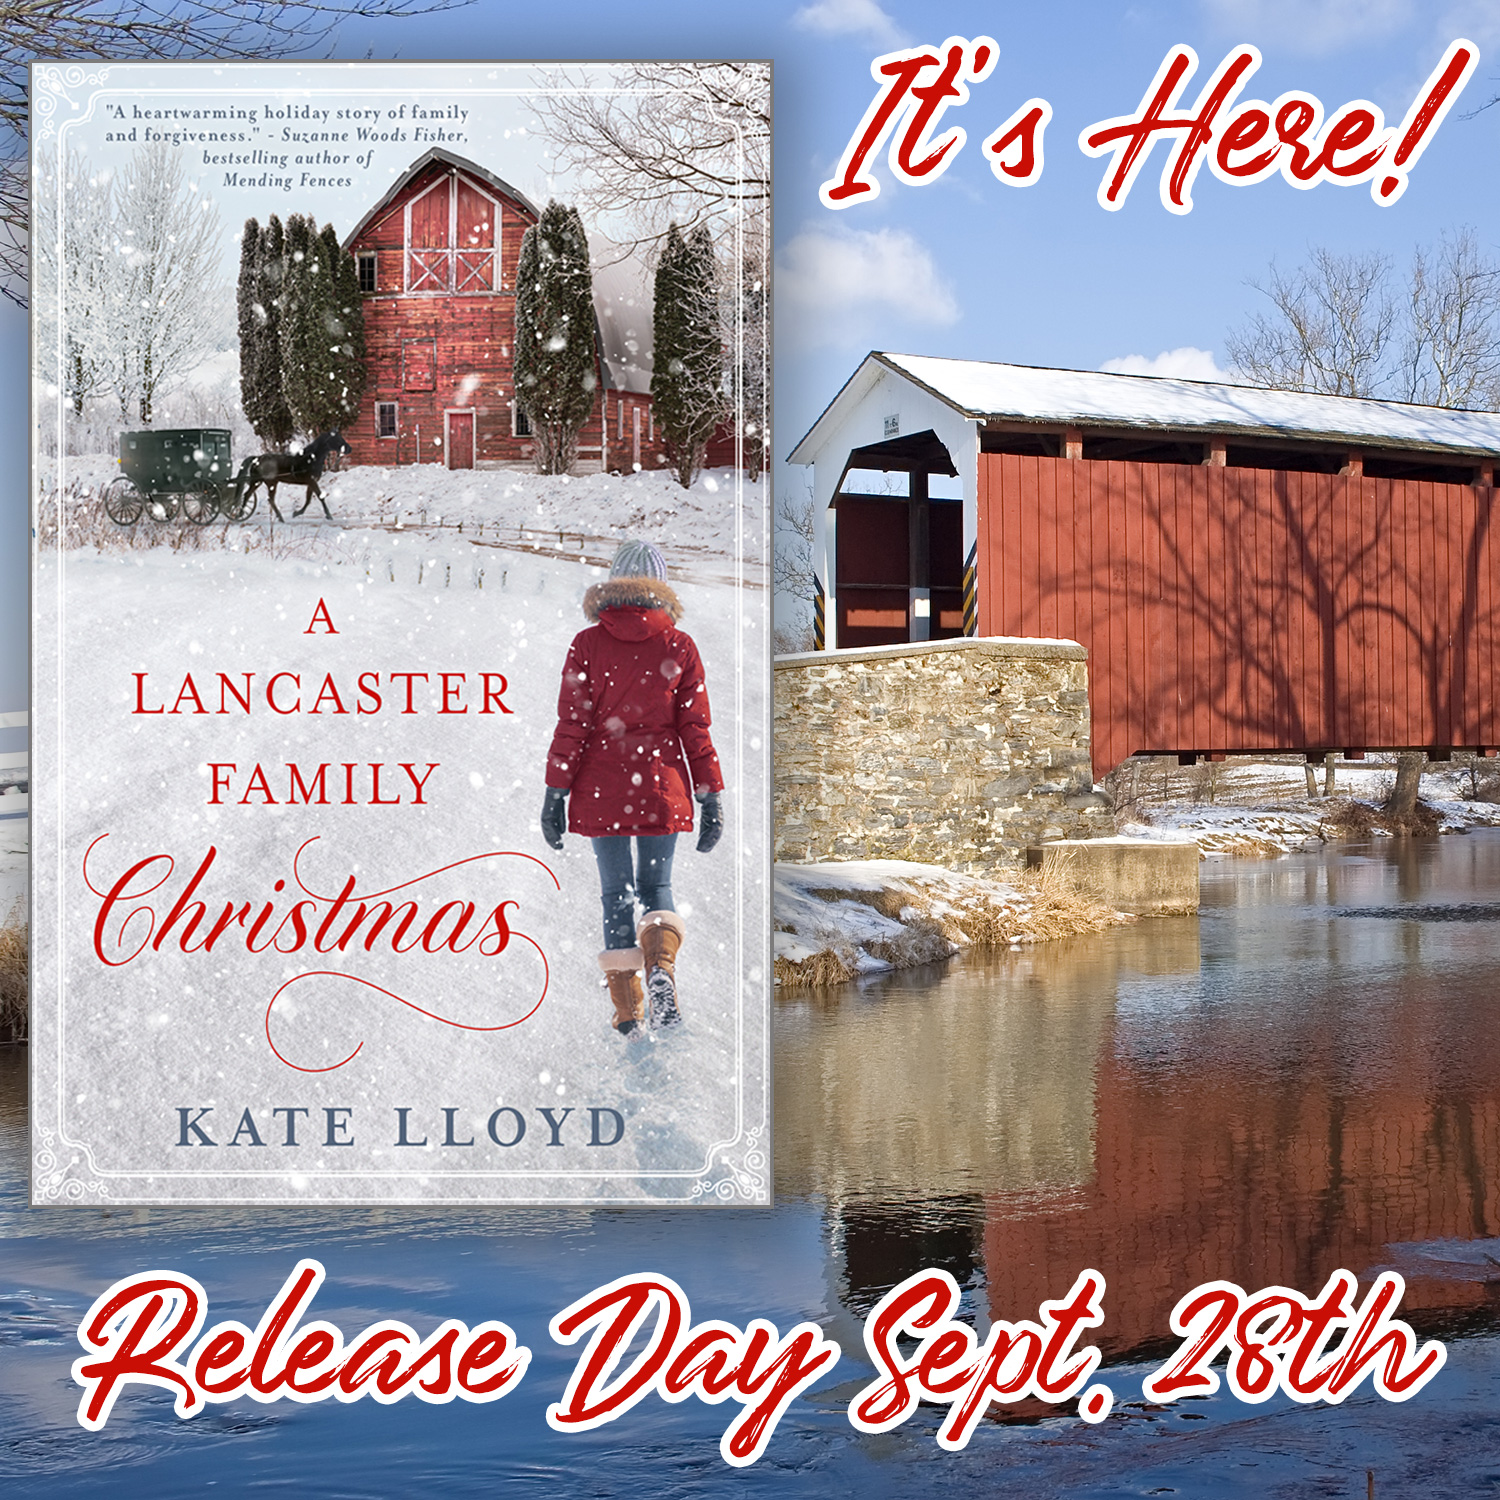 A Lancaster Family Christmas release day